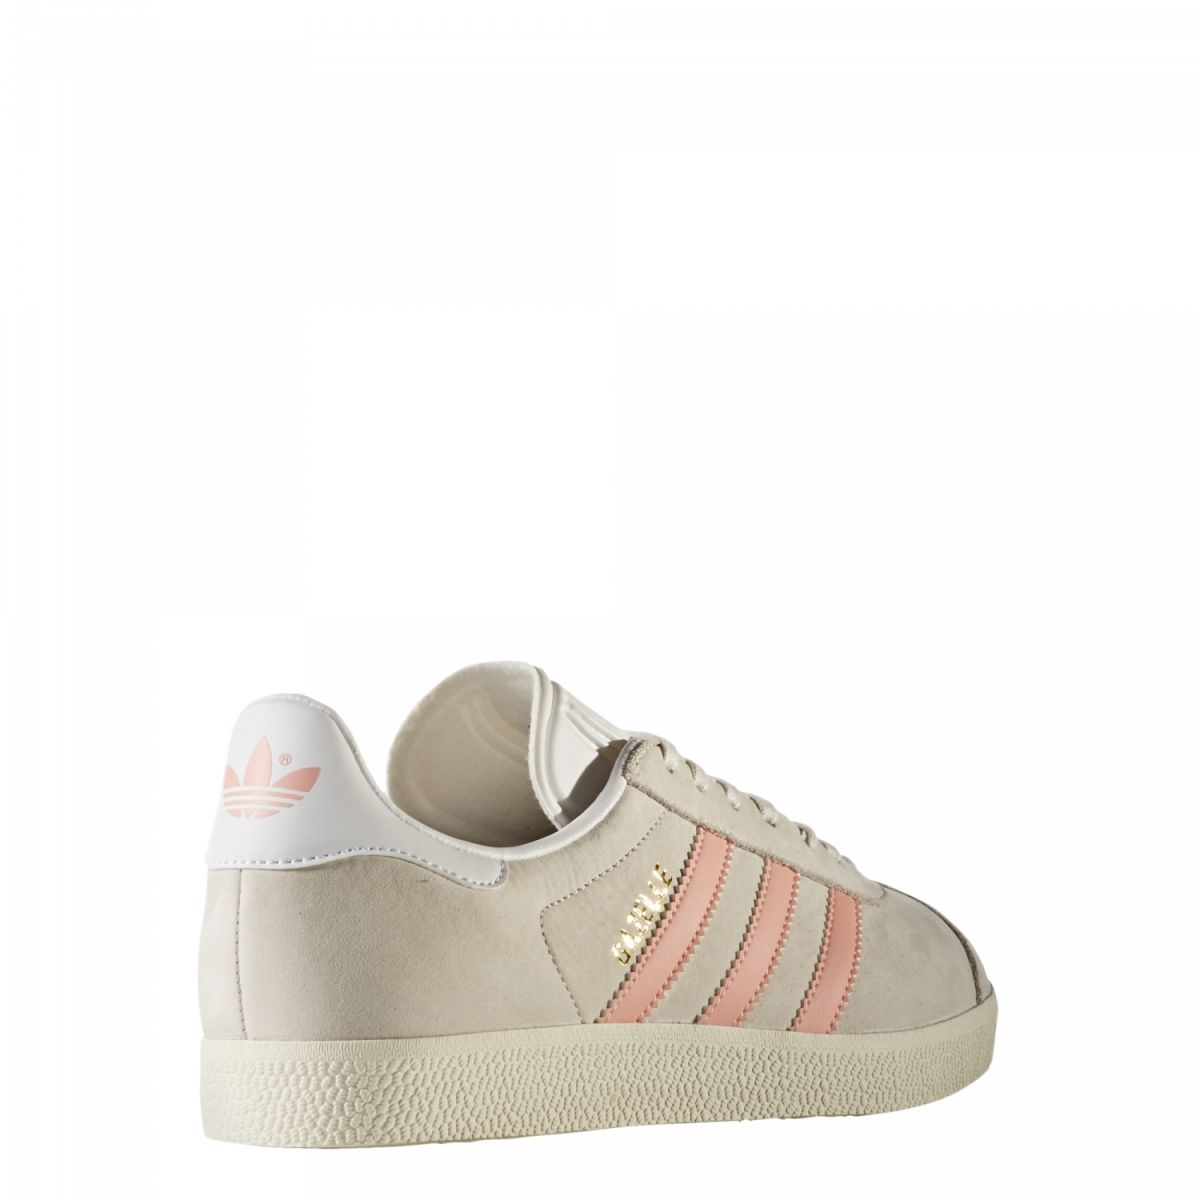 adidas originals gazelle sneaker damen schuhe beige rosa by9035 sport klingenmaier. Black Bedroom Furniture Sets. Home Design Ideas